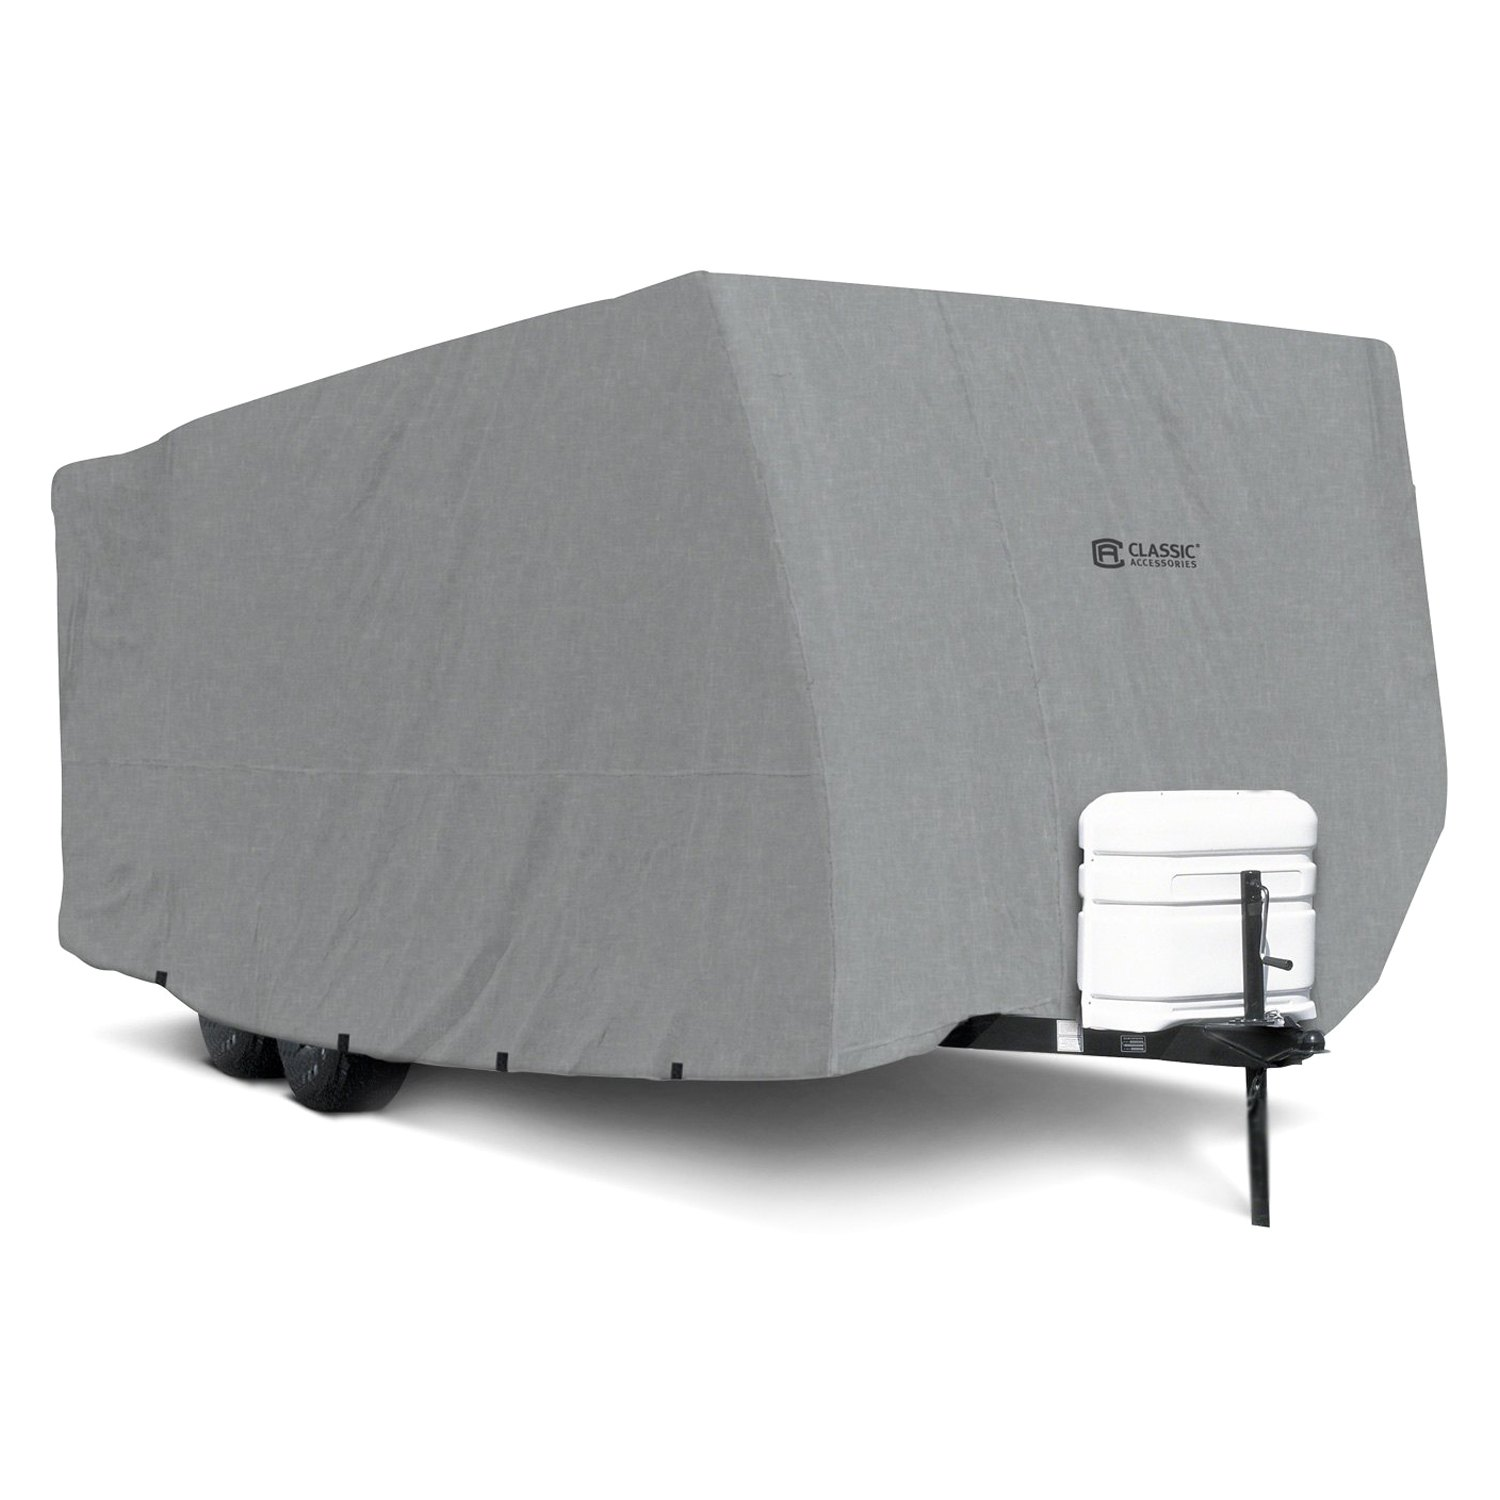 Classic Accessories  PolyPRO1 Travel Trailer Cover